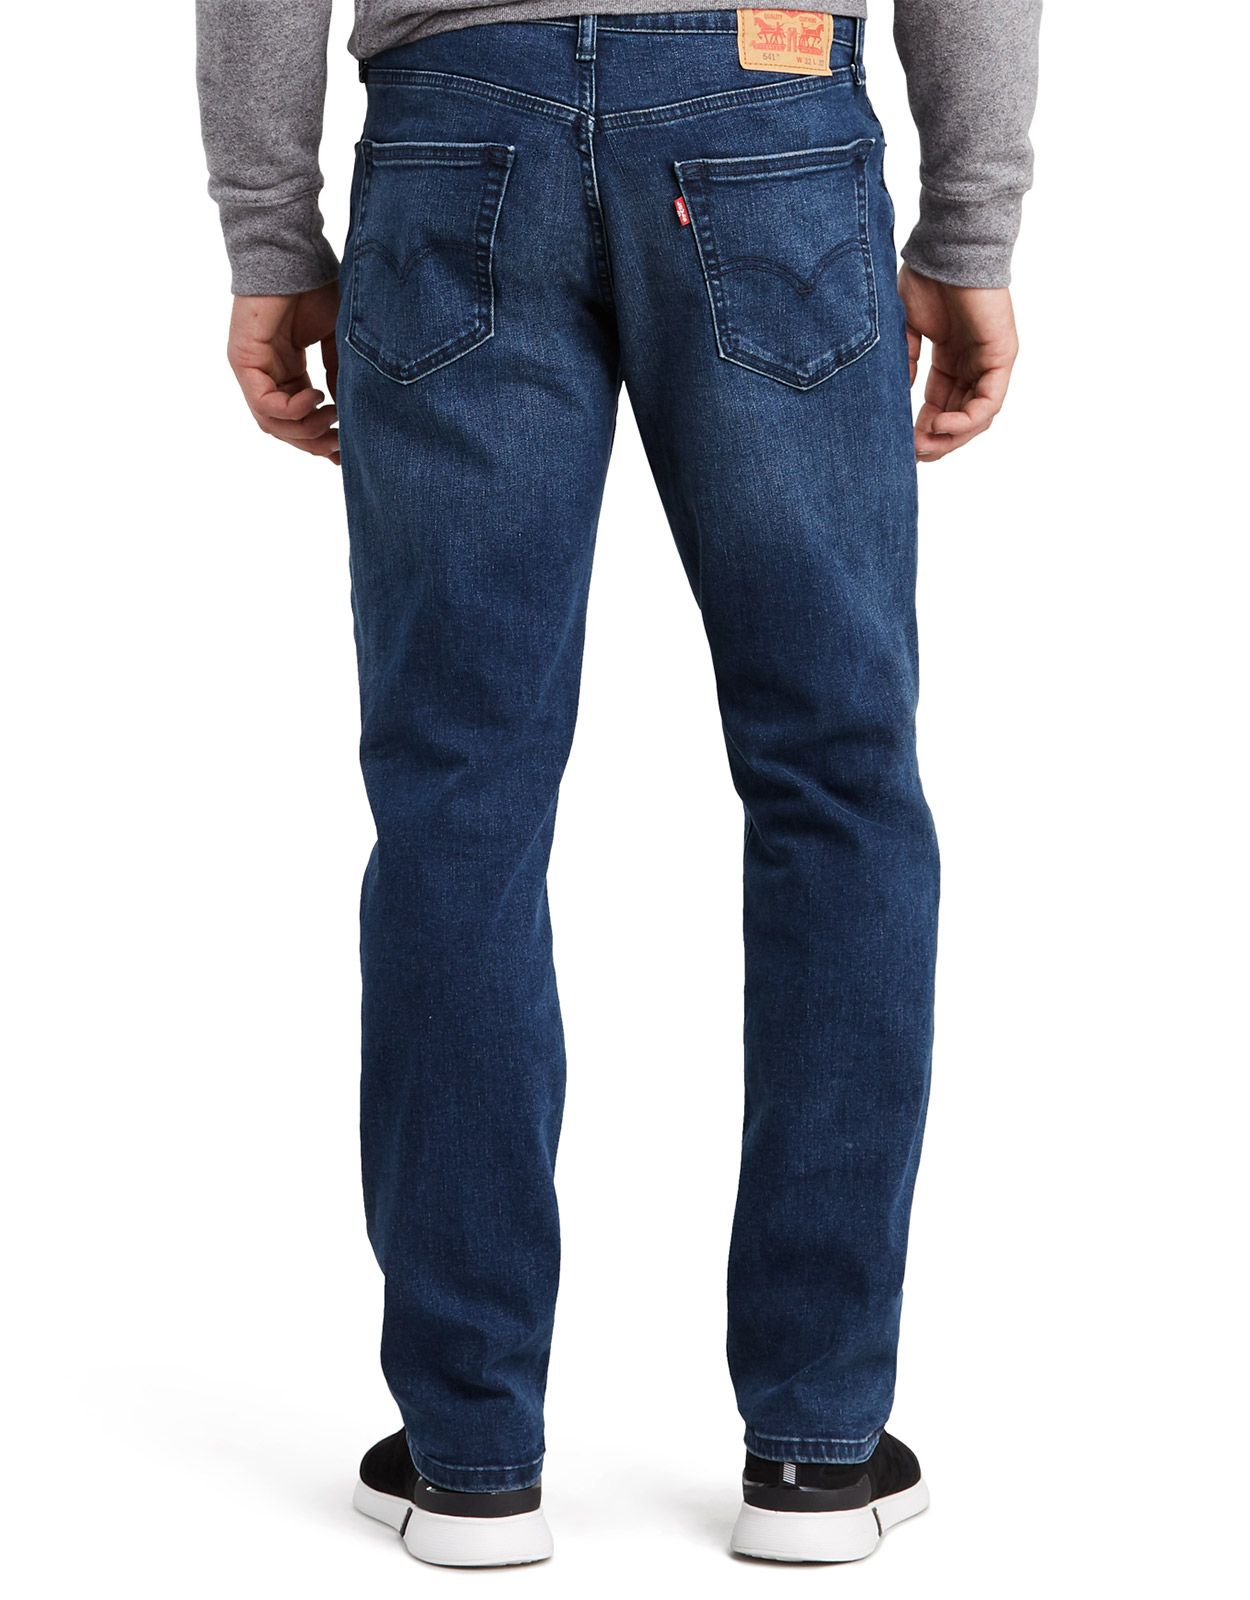 Levi's Men's 541 Stretch Mid Rise Relaxed Fit Tapered Leg Jeans - Husker